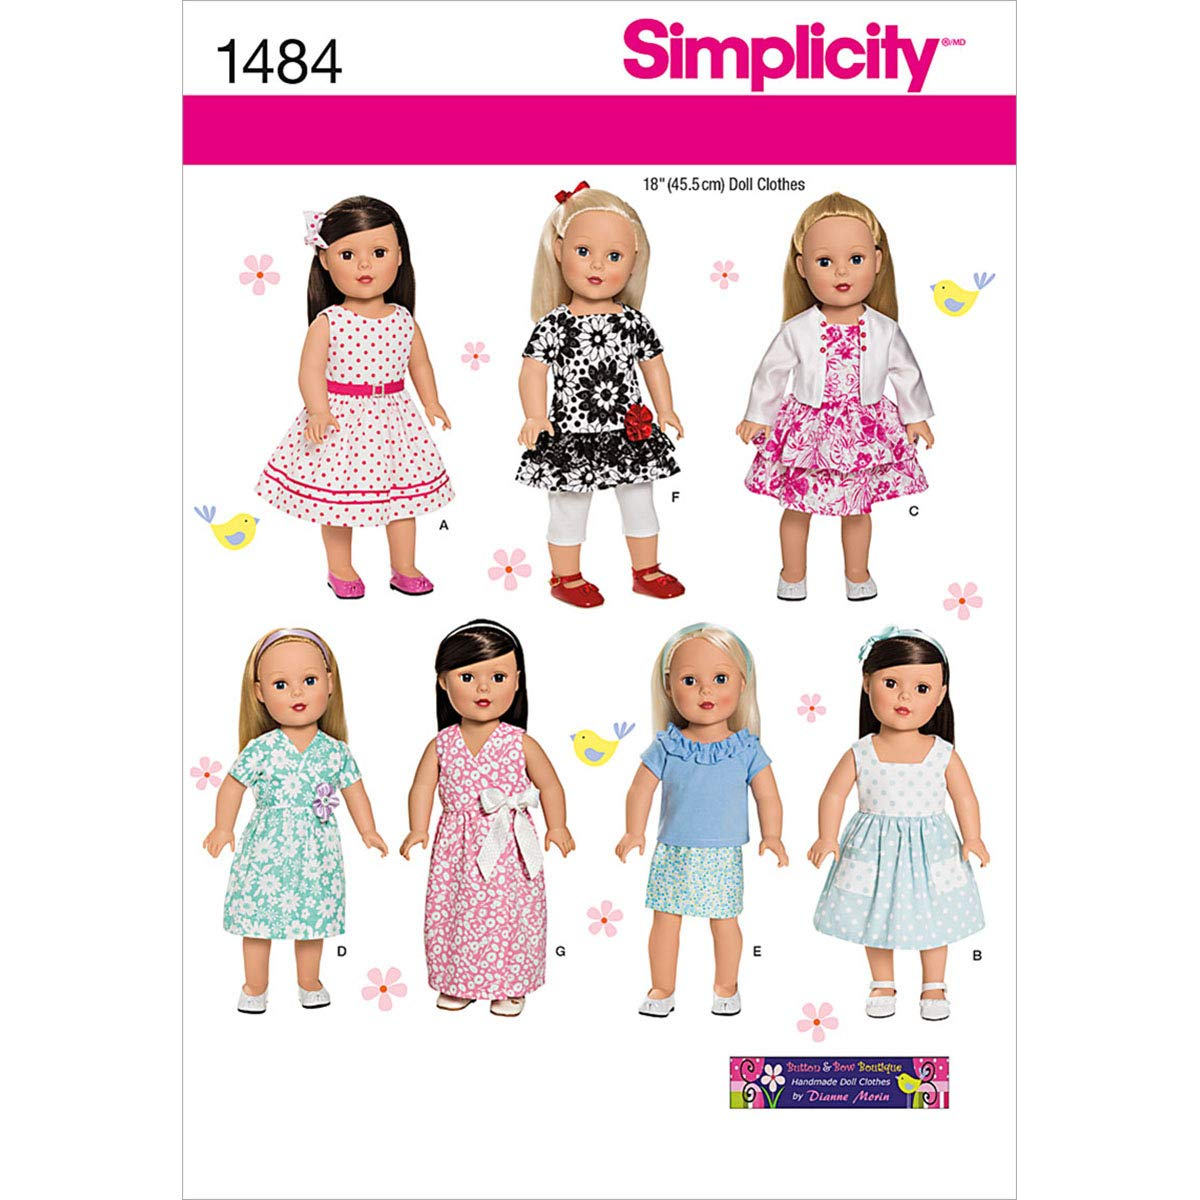 Simplicity Creative Patterns 1484 Doll Clothes, 18-Inch US1484OS